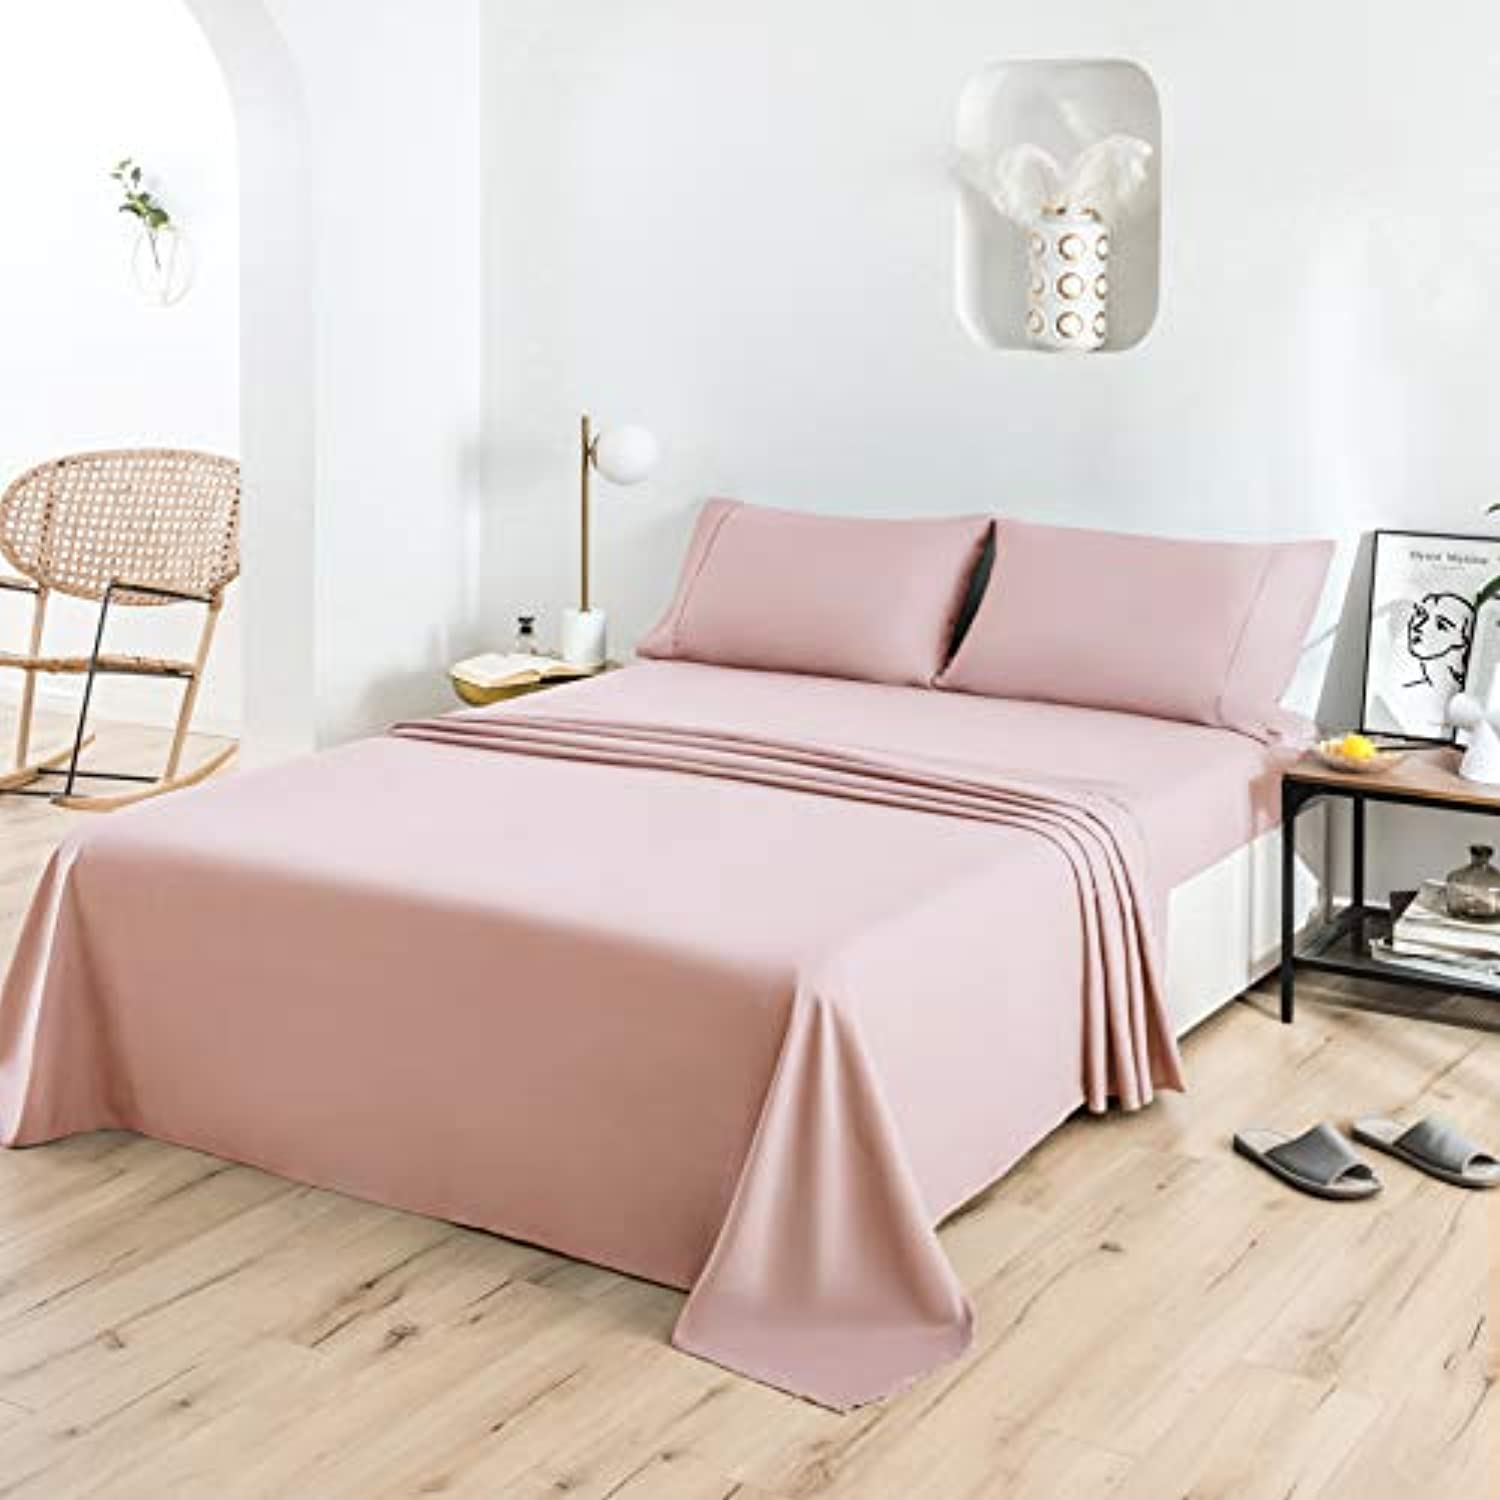 Pink Sheet Set 4 Pieces Brushed Microfiber Luxury with Soft Bedding Fade and Stain Resistant Queen